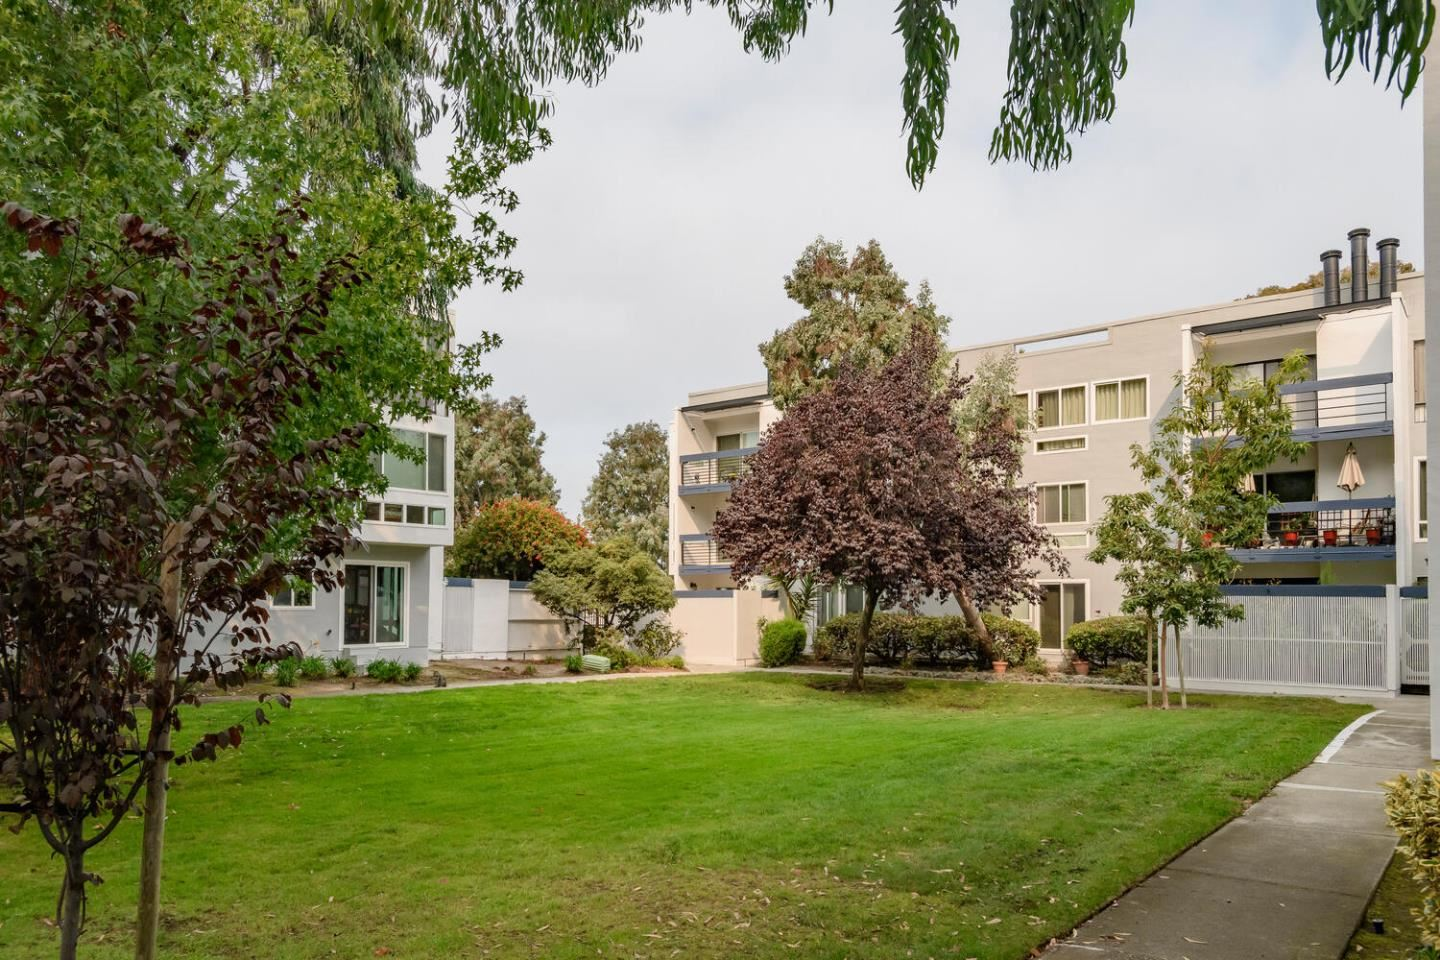 Photo for 1091 Shell BLVD 3 #3, FOSTER CITY, CA 94404 (MLS # ML81816221)